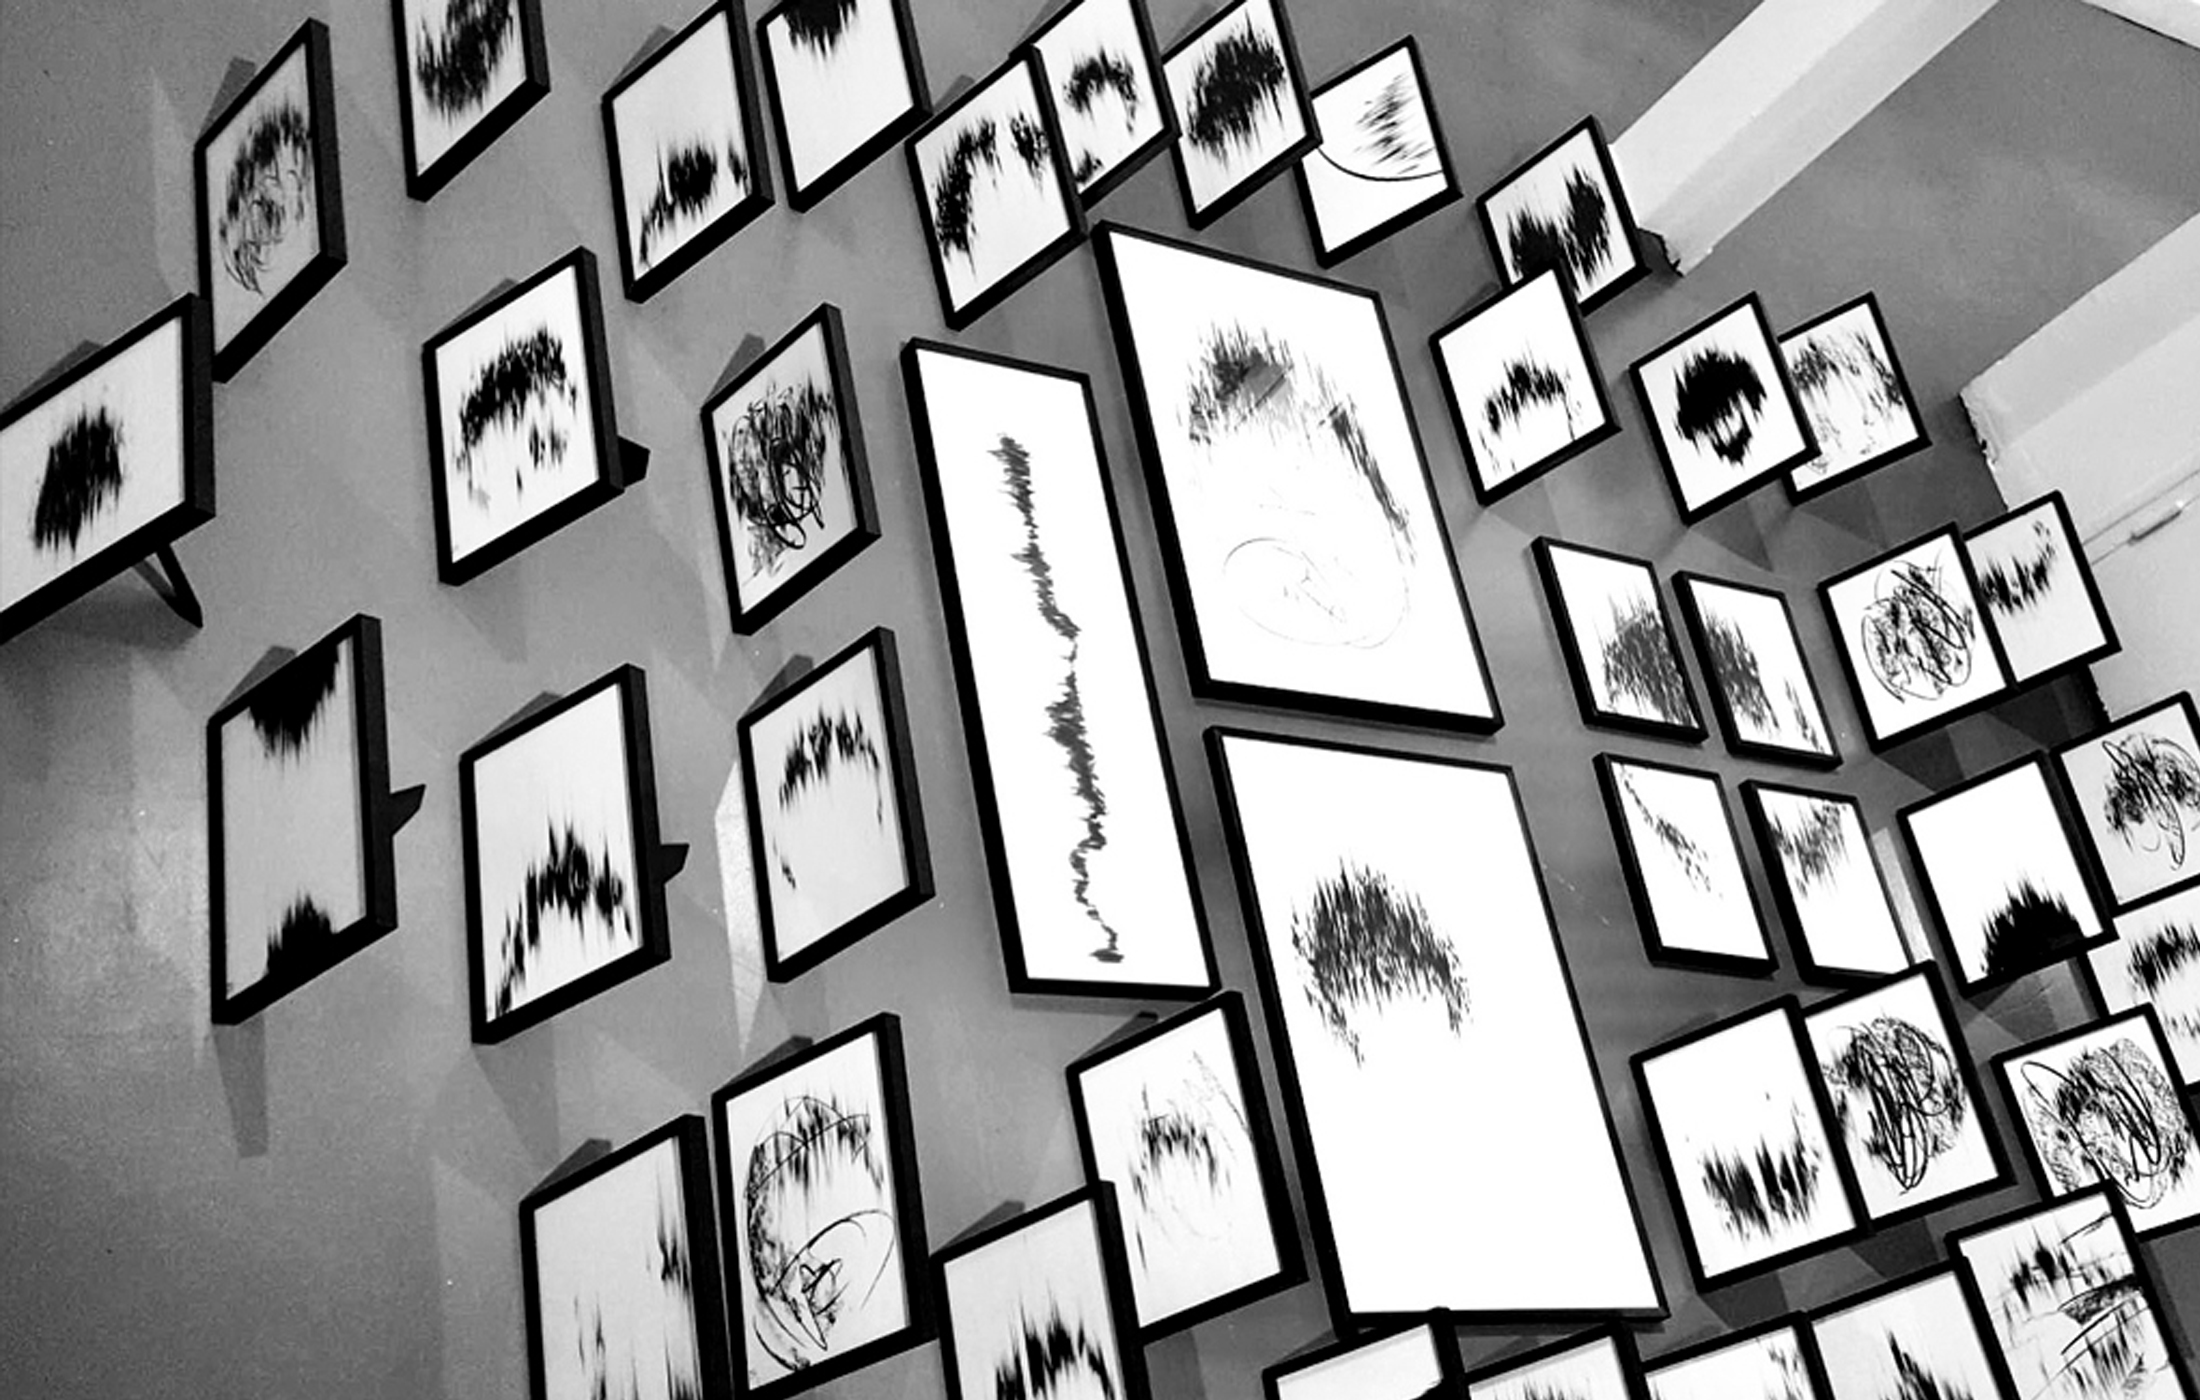 Agathe Toman Mêmes Drawing Contemporary Art illustration black and white